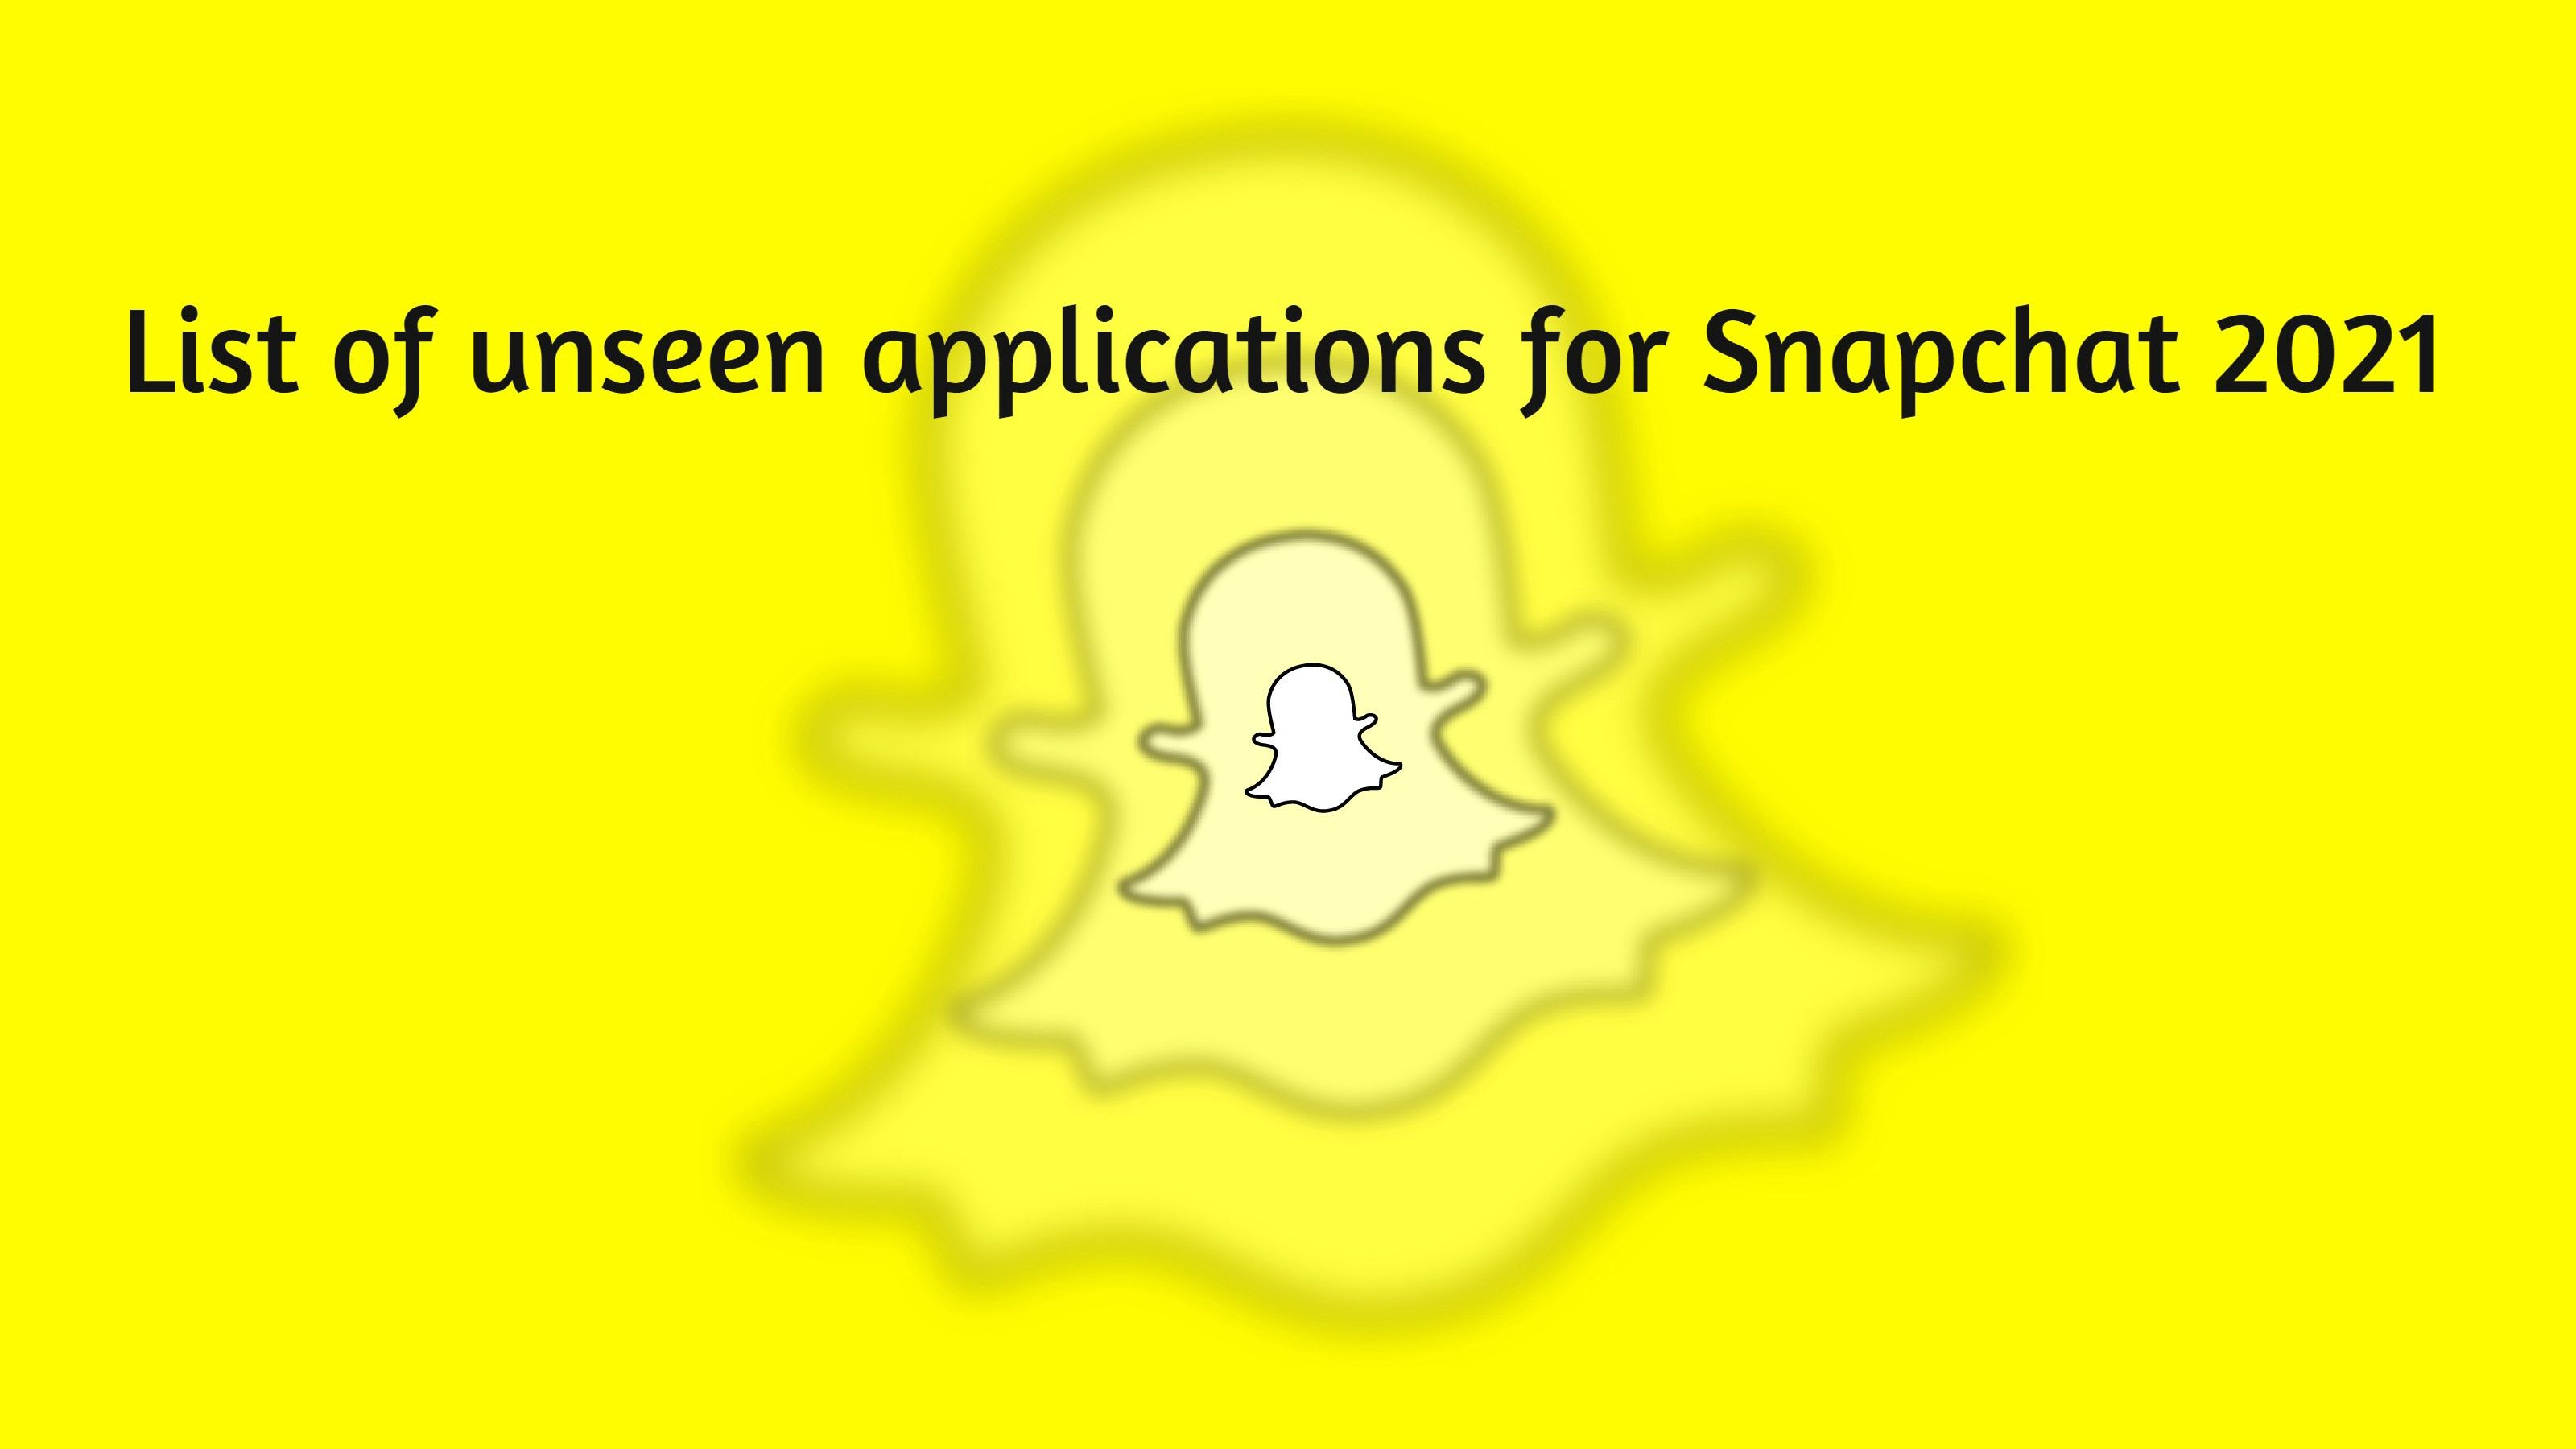 List Of Unseen Applications For Snapchat 2021 In 2021 Snapchat Message Snapchat Snapchat Application